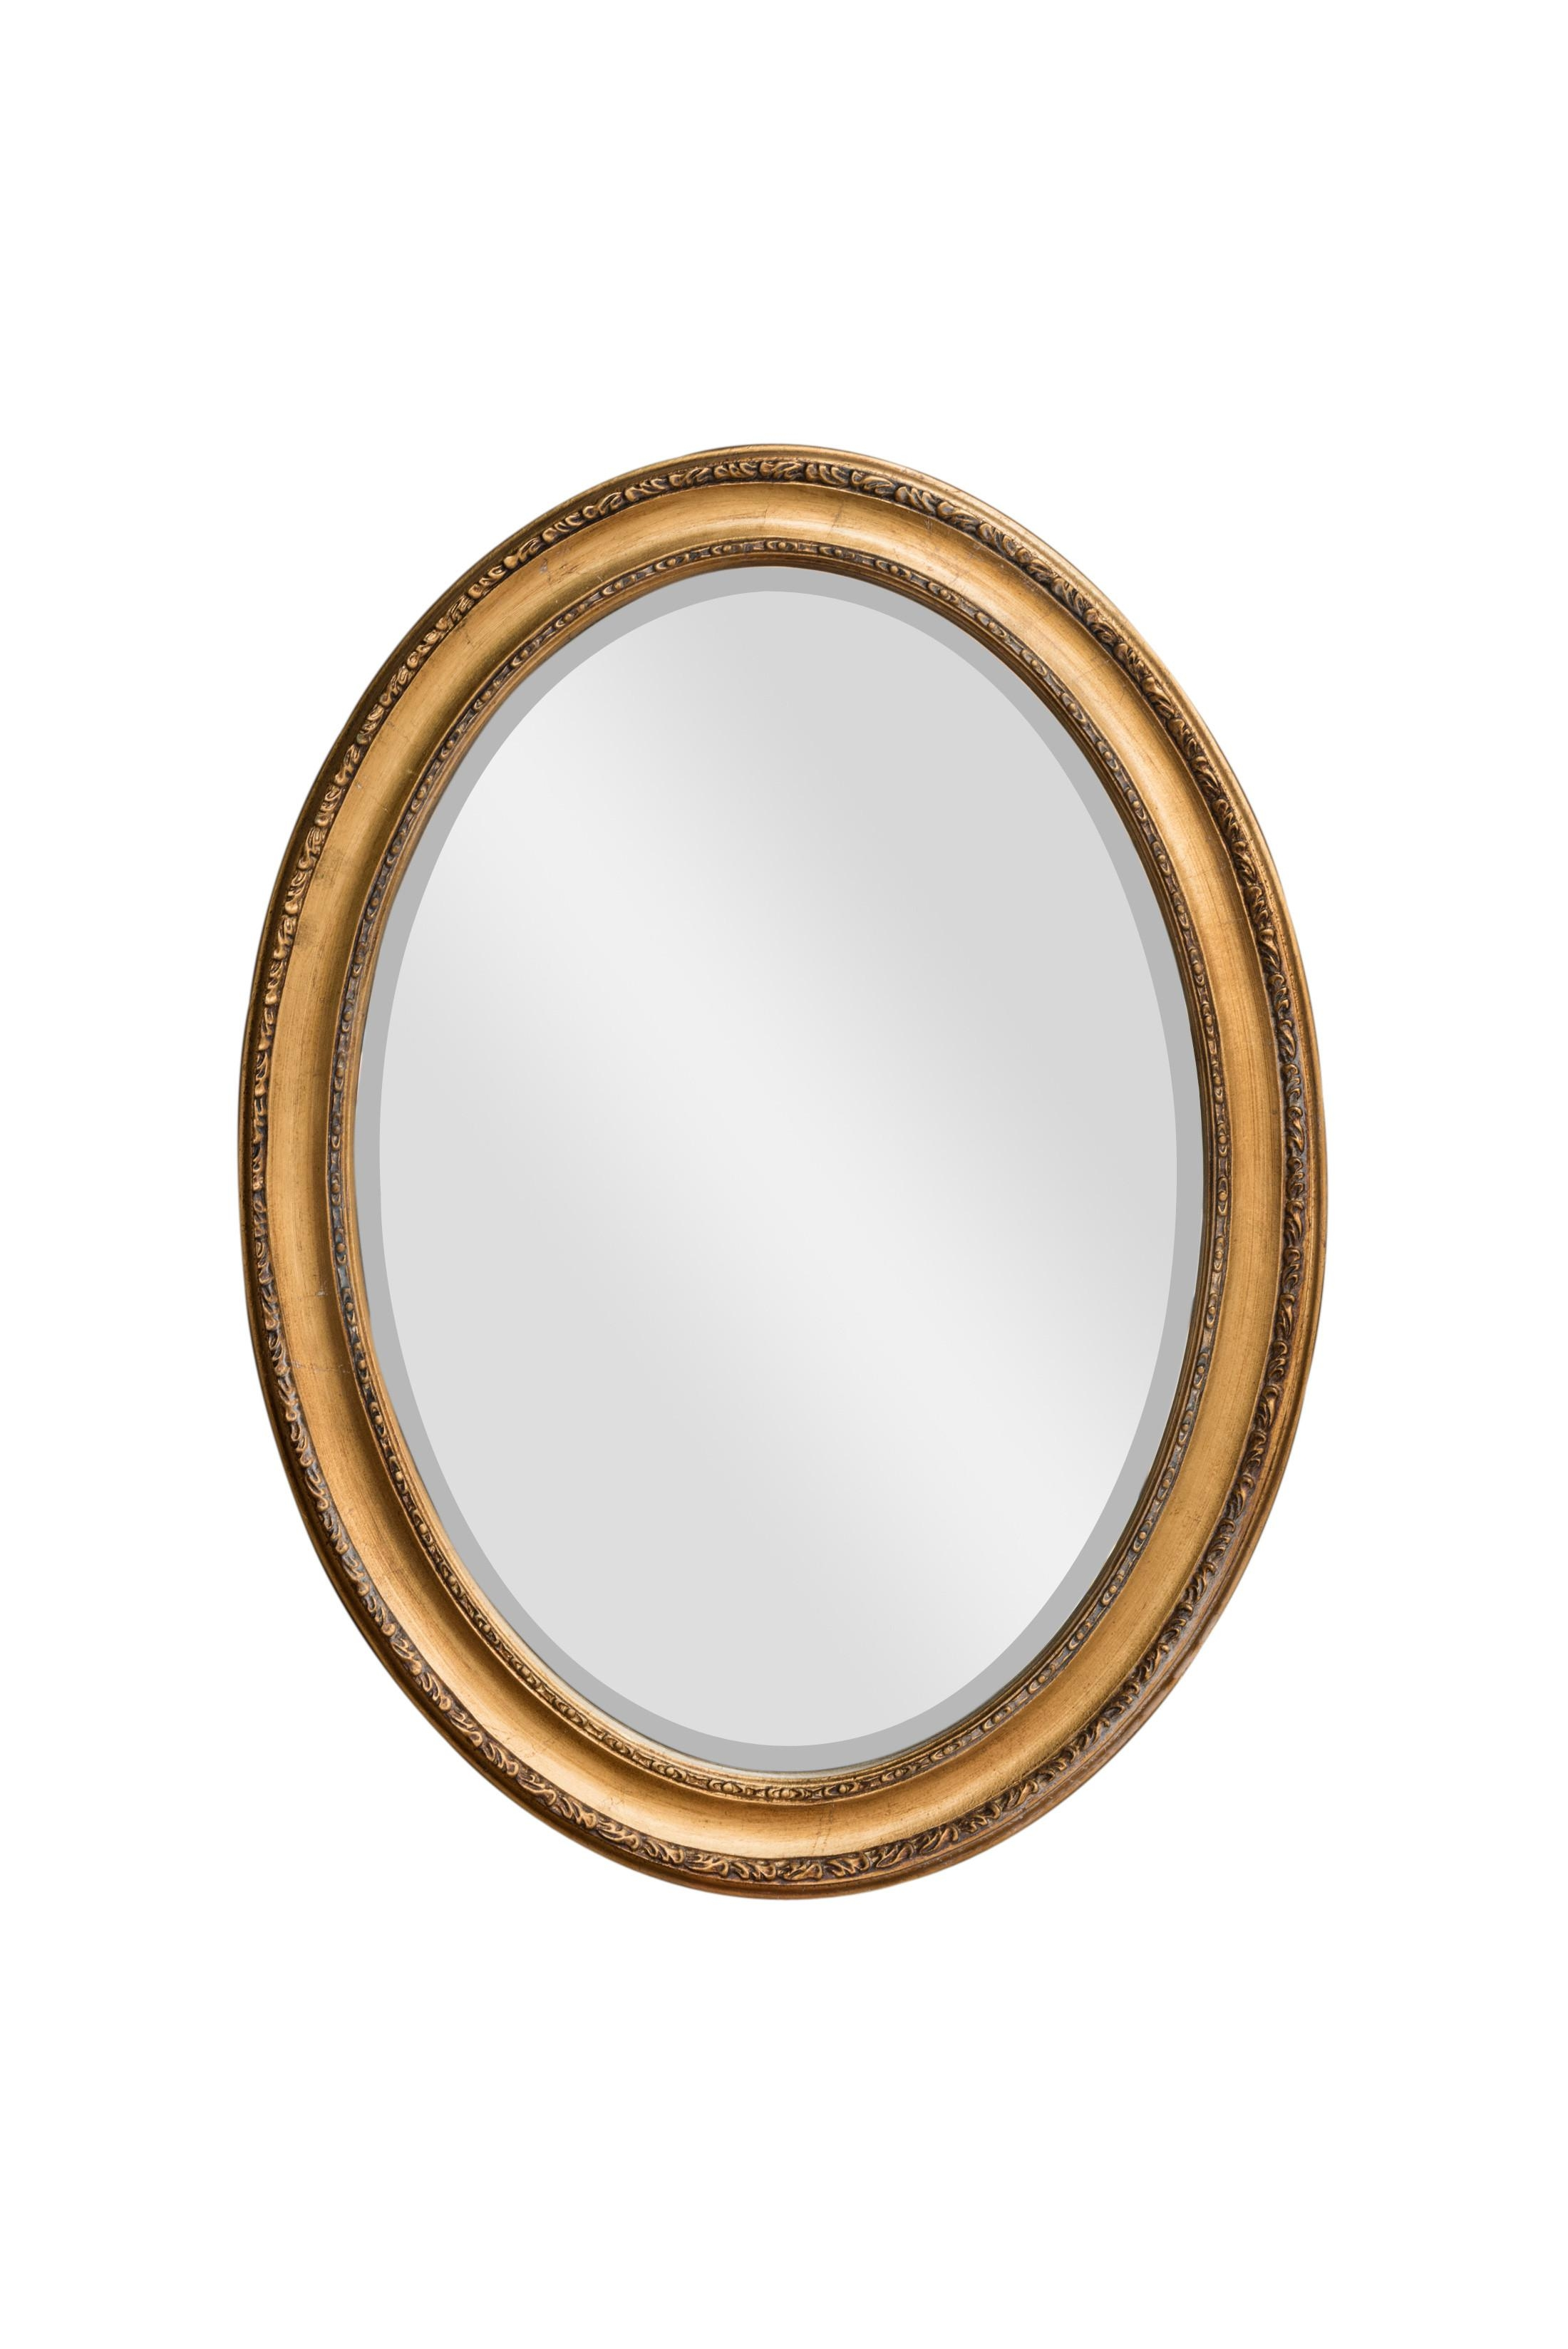 Oval Mirror Gold Leaf With Regard To Gold Oval Mirrors (Image 18 of 20)